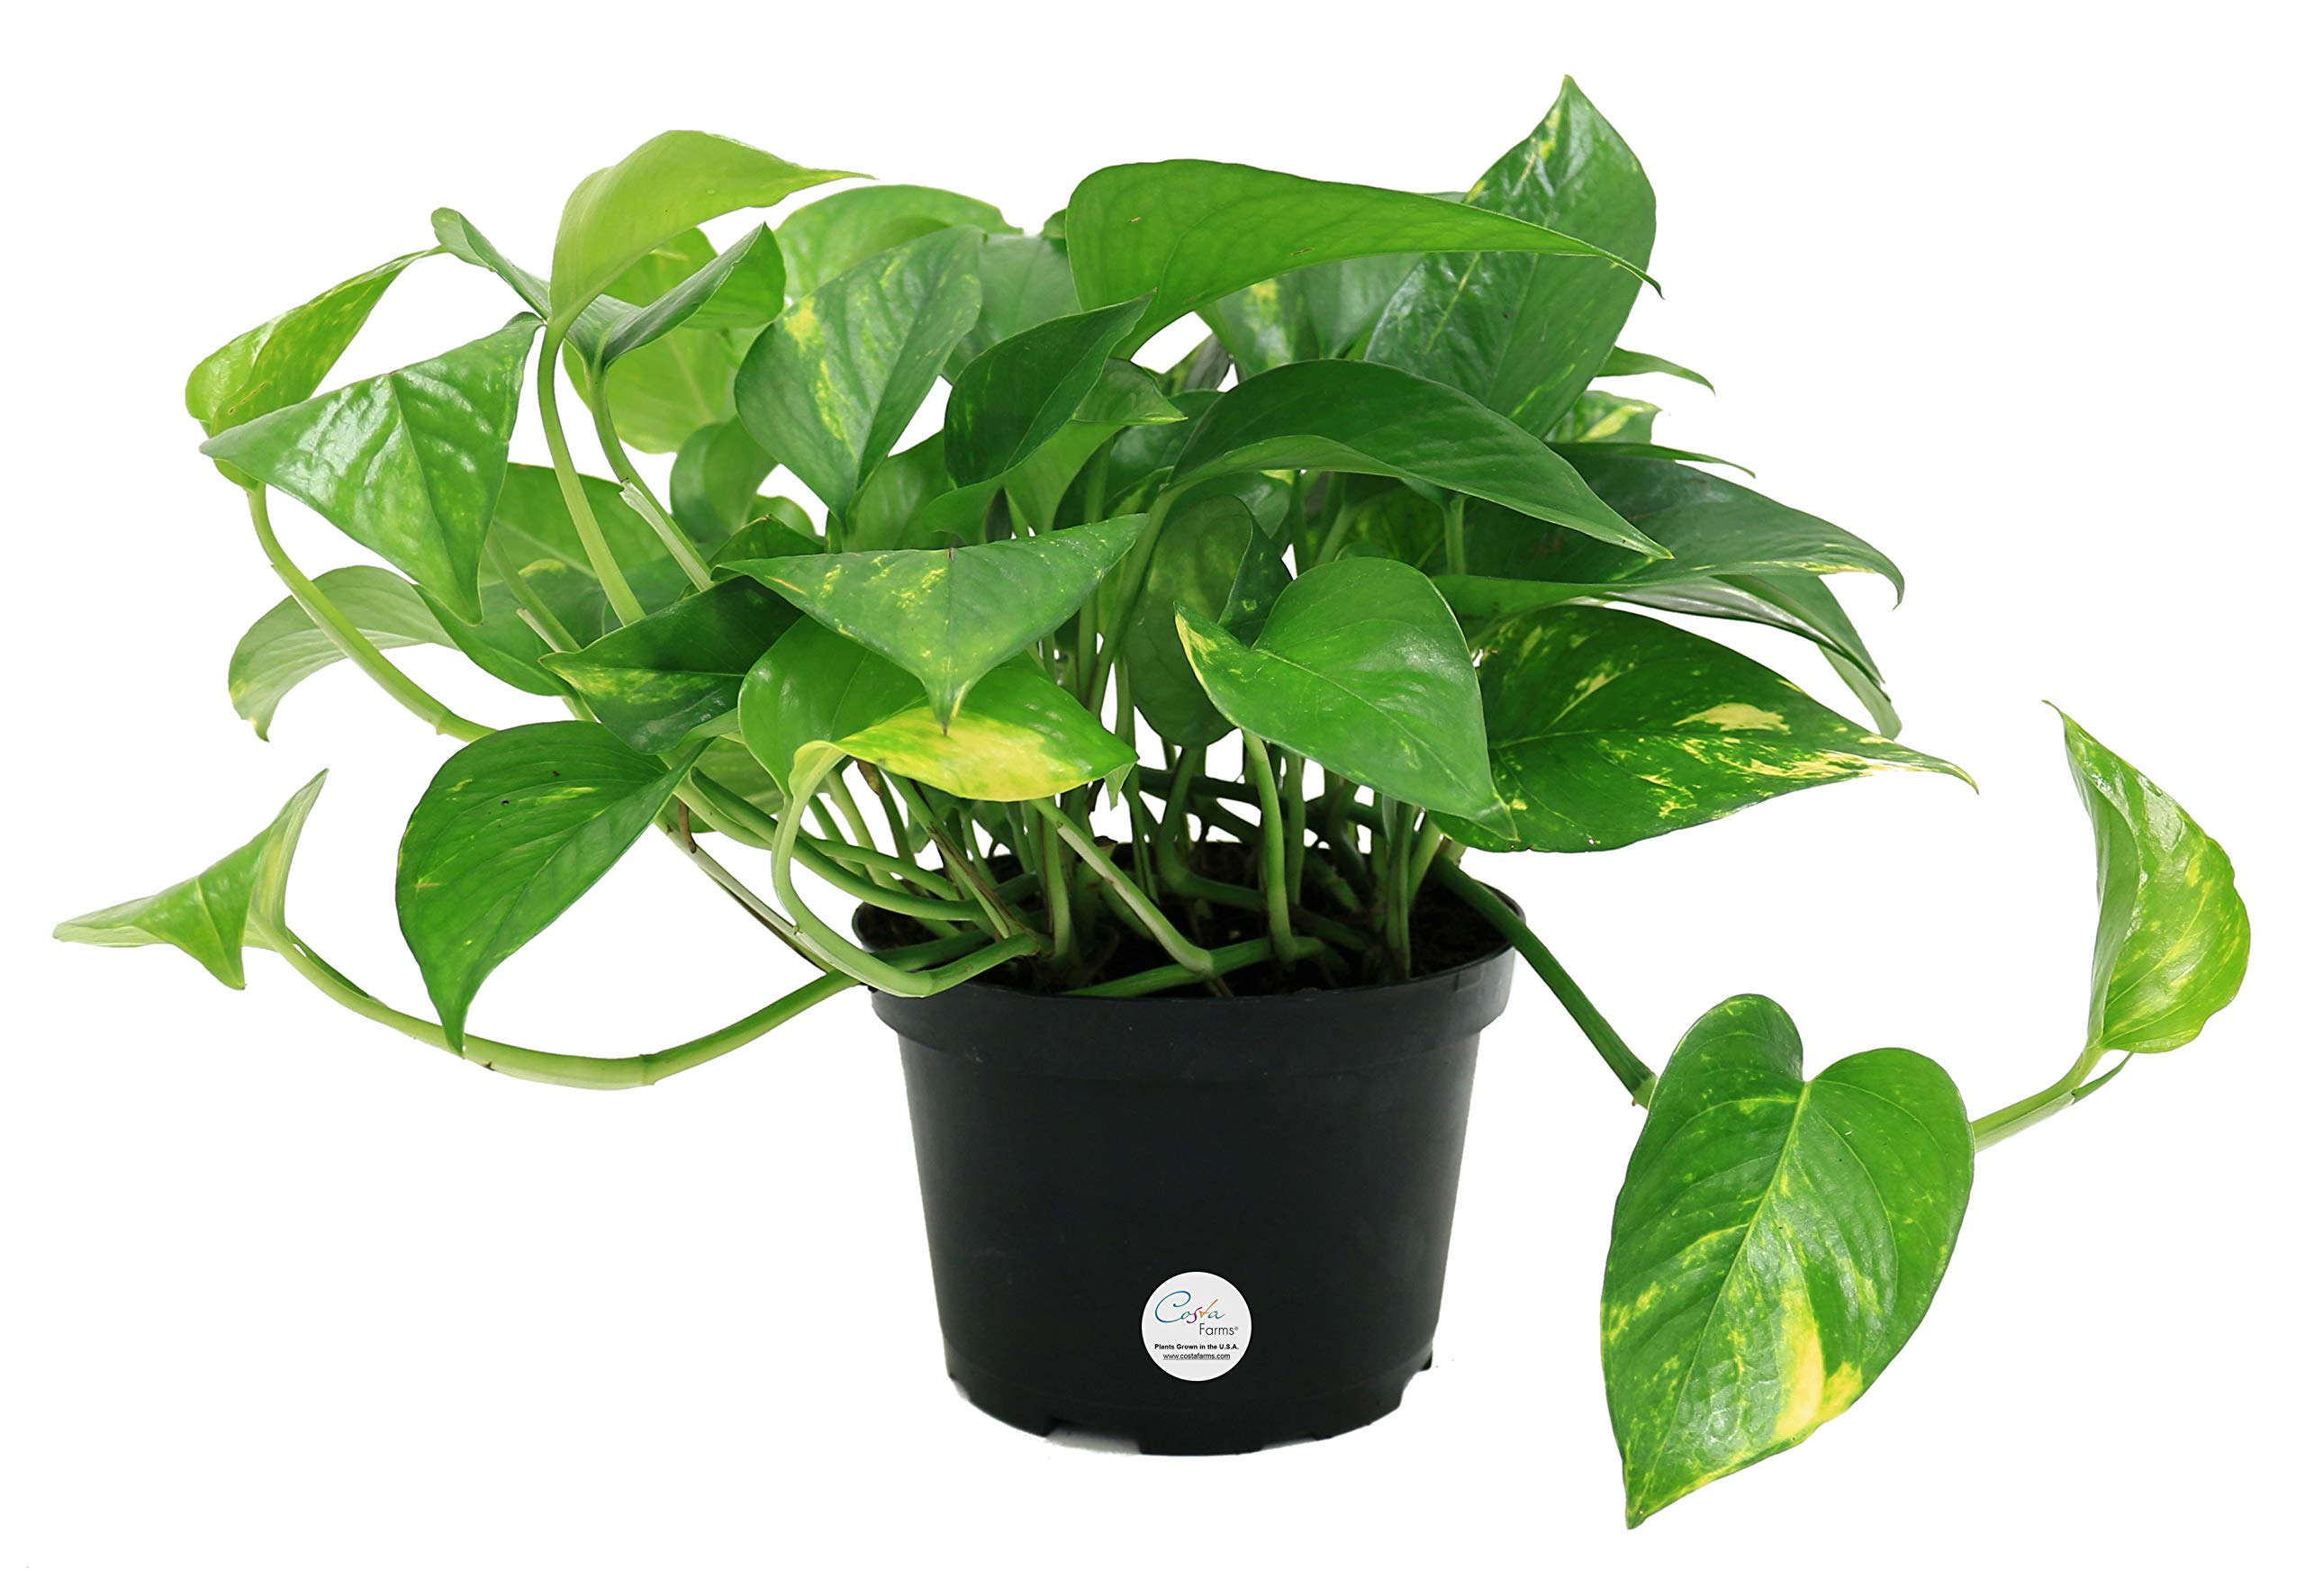 Costa Farms Golden Pothos Devil's Ivy Live Indoor Plant, 6-Inch, Ships in Grower's Pot by Costa Farms